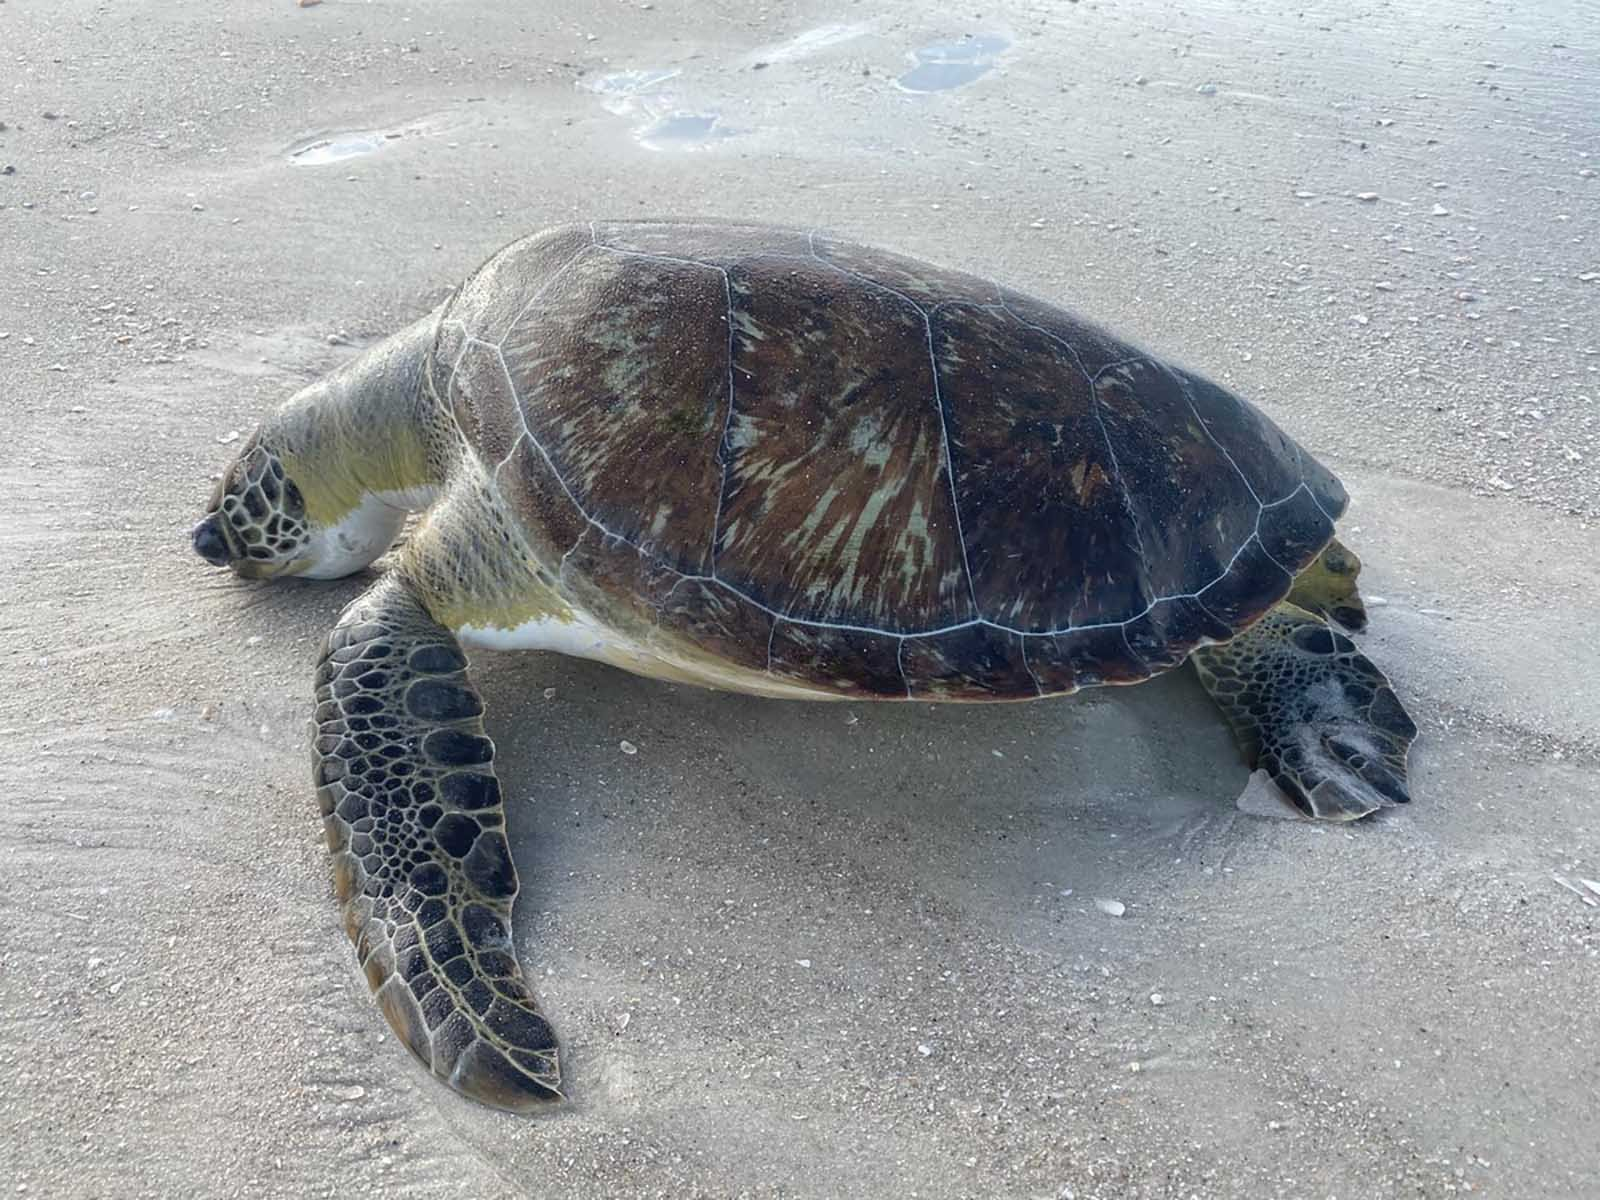 Red tide likely to blame for the highest number of sea turtle deaths a Florida county has ever recorded